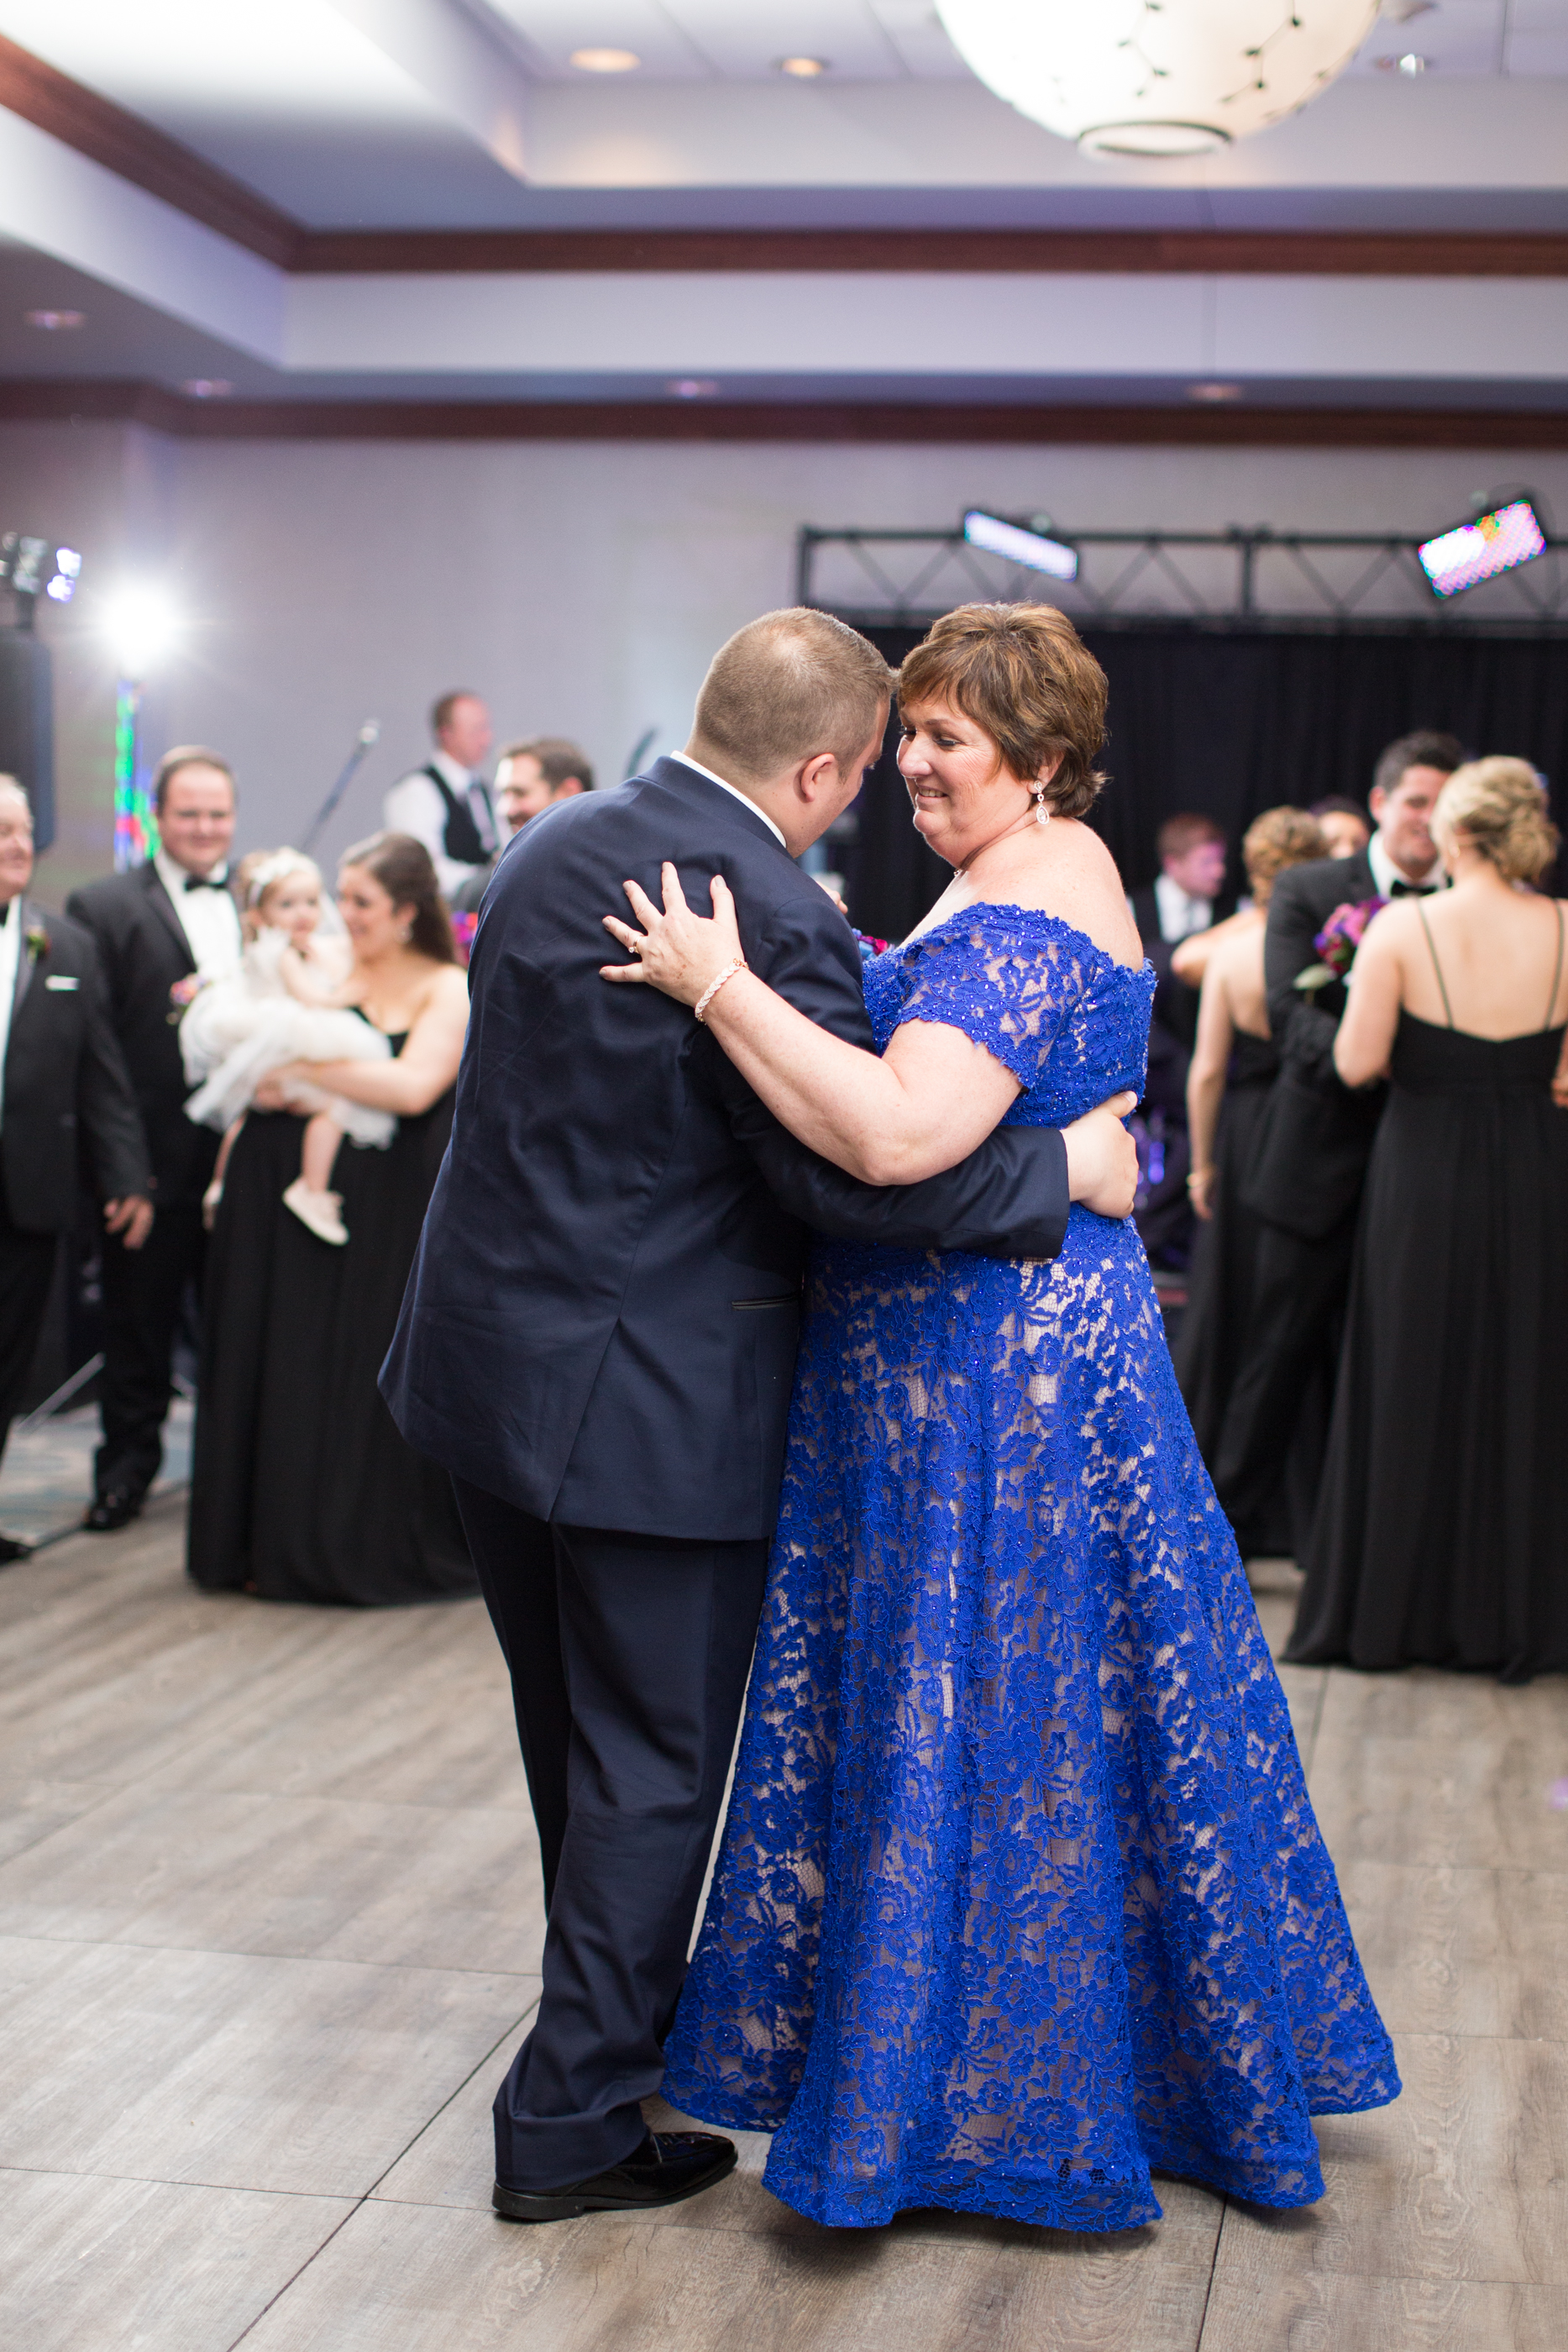 Hilton Scranton PA Wedding Photos_JDP-130.jpg